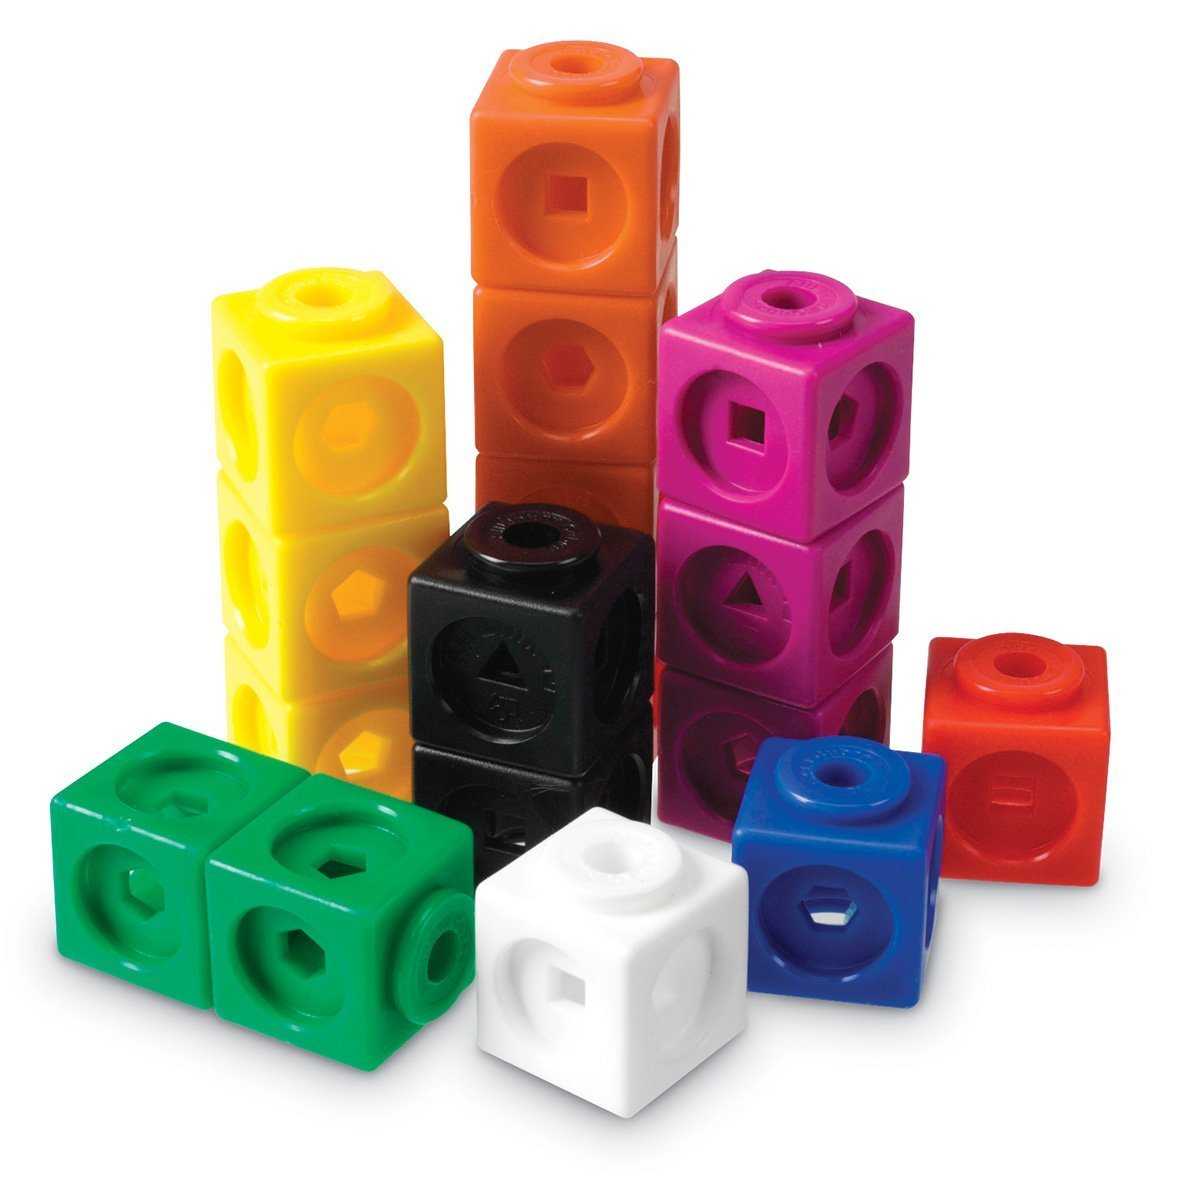 B000URL296 Learning Resources Mathlink Cubes, Educational Counting Toy, Early Math Skills, Set of 100 Cubes 61bR5N2BdmJL